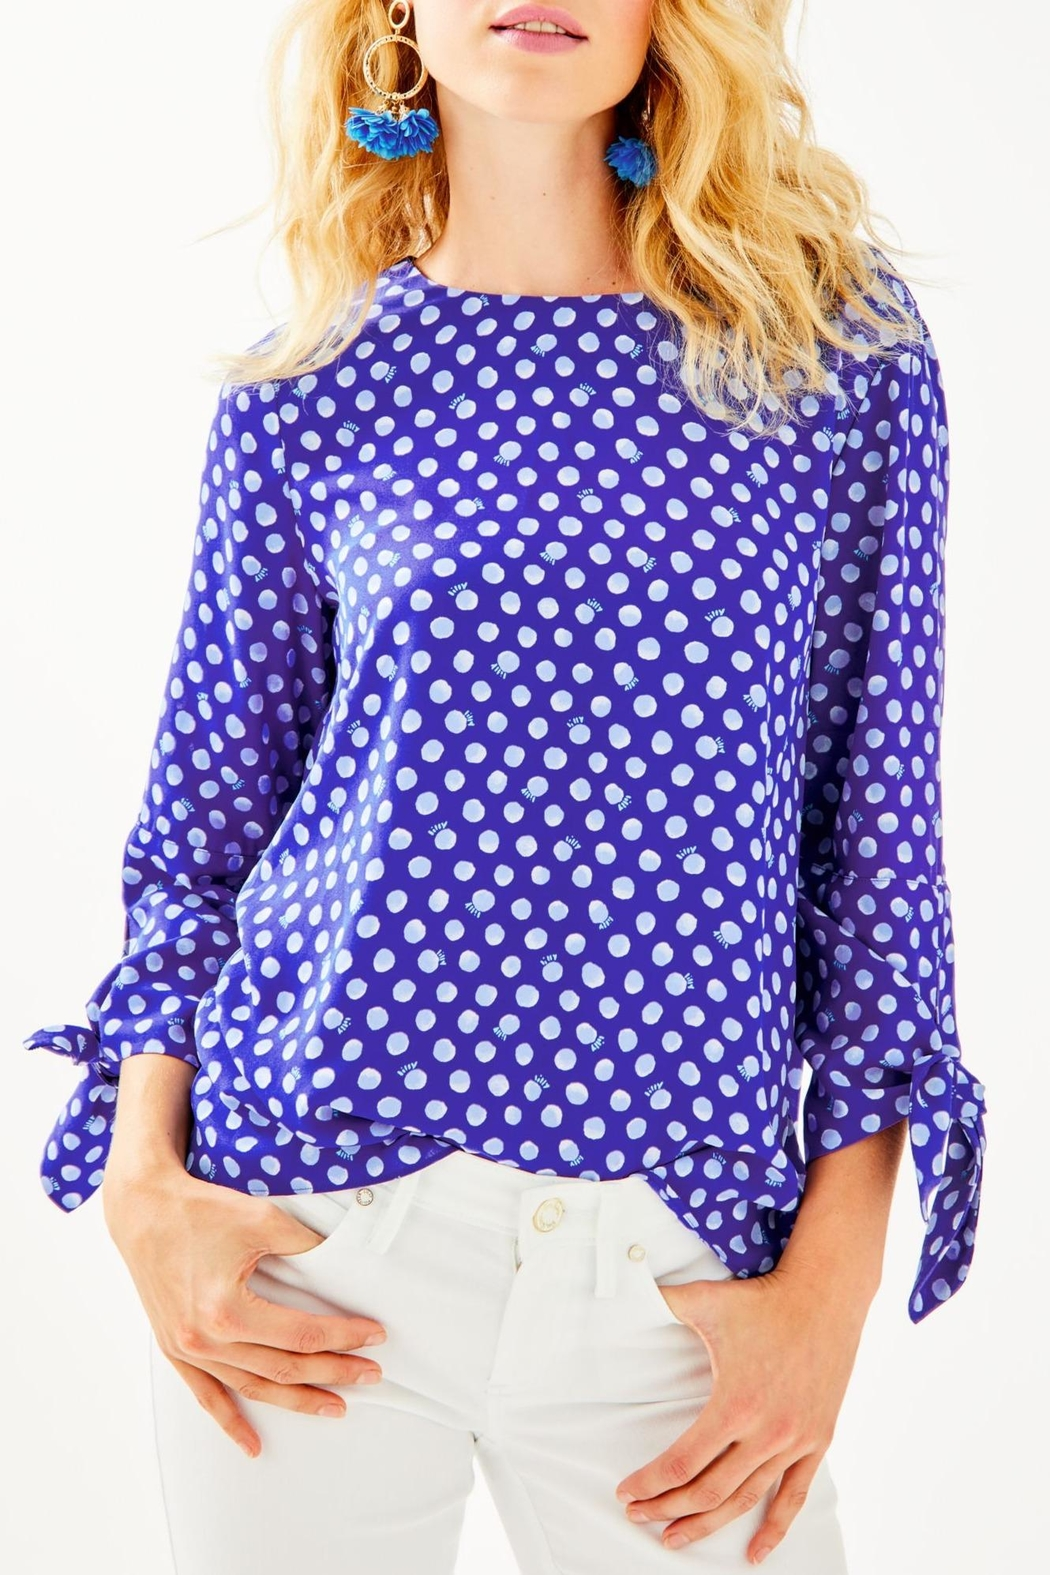 Lilly Pulitzer Langston Top - Main Image